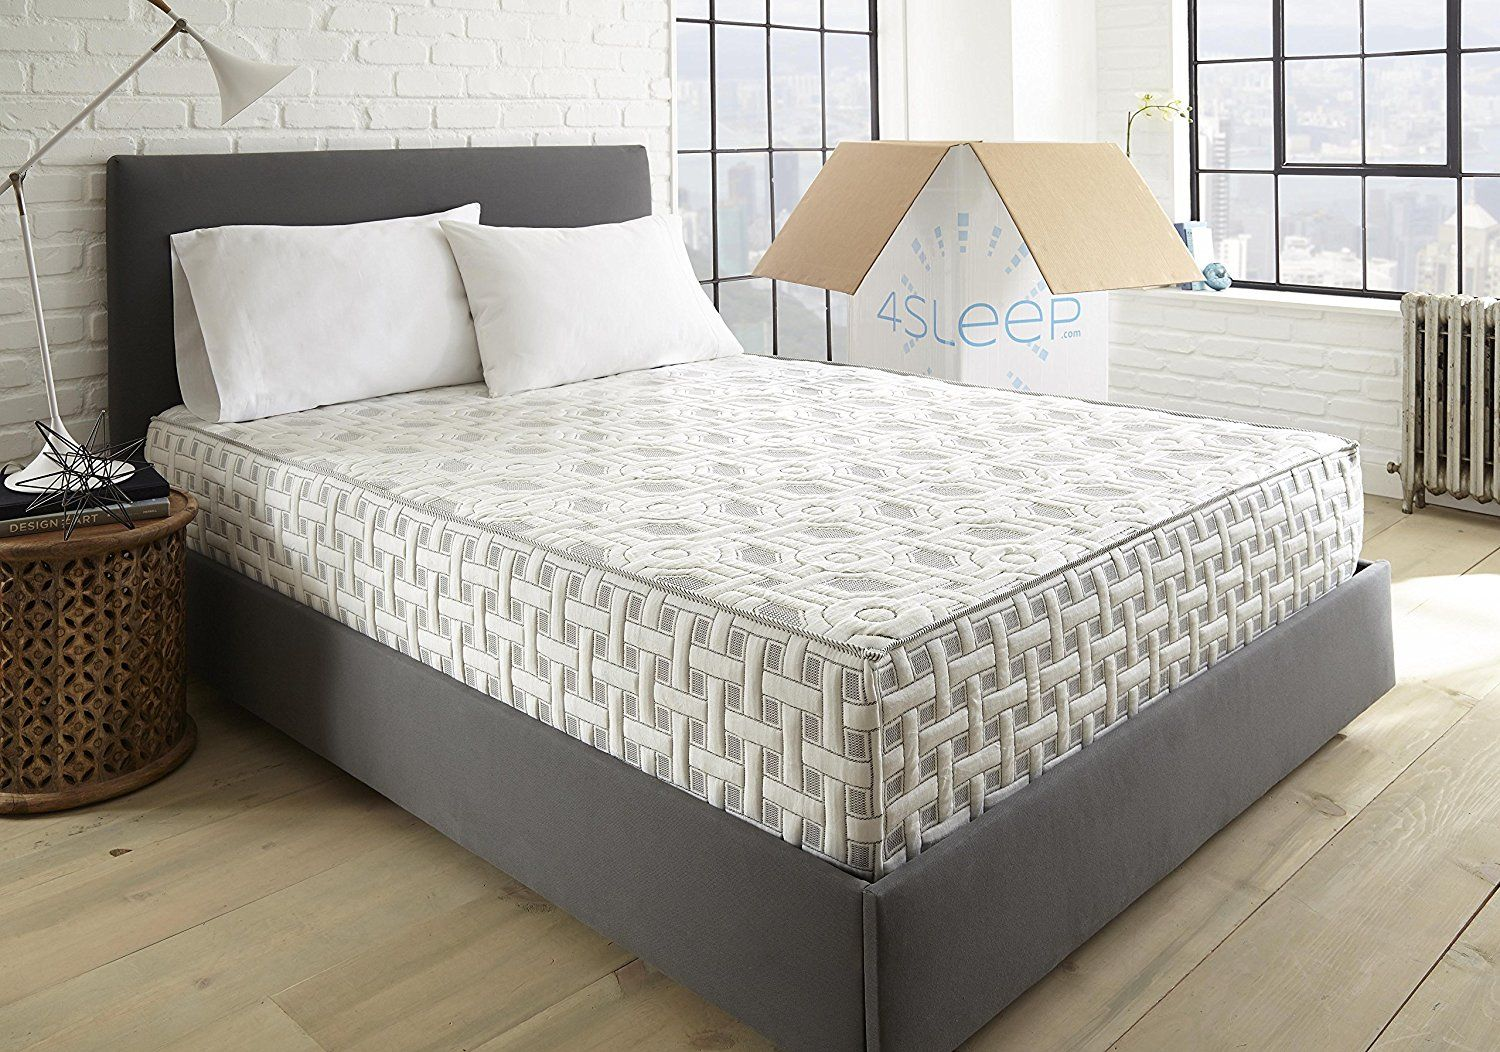 4sleep Mattress 100 Usa Made 10 Year Warranty Twin Check This Awesome Image This Is An Amazon Affiliate Link I Home Decor Mattress Home Decor Tips